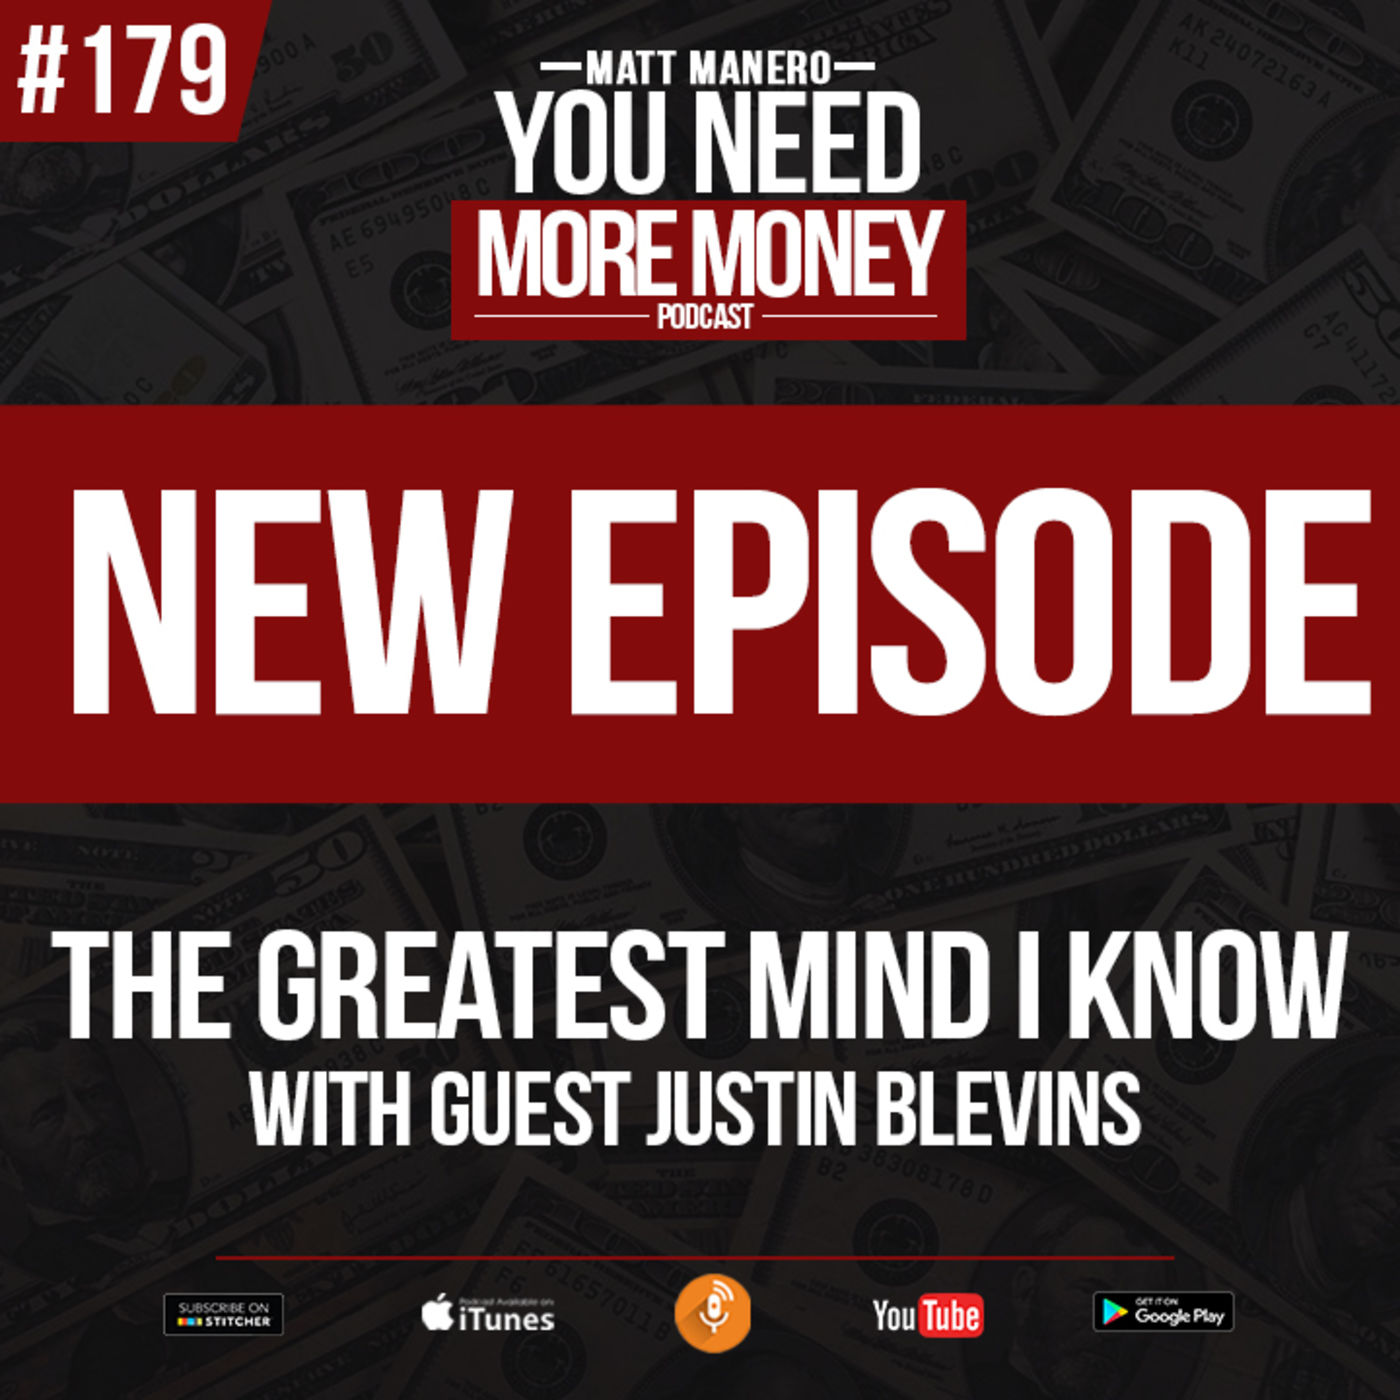 #179 The Greatest Mind I Know with Guest Justin Blevins